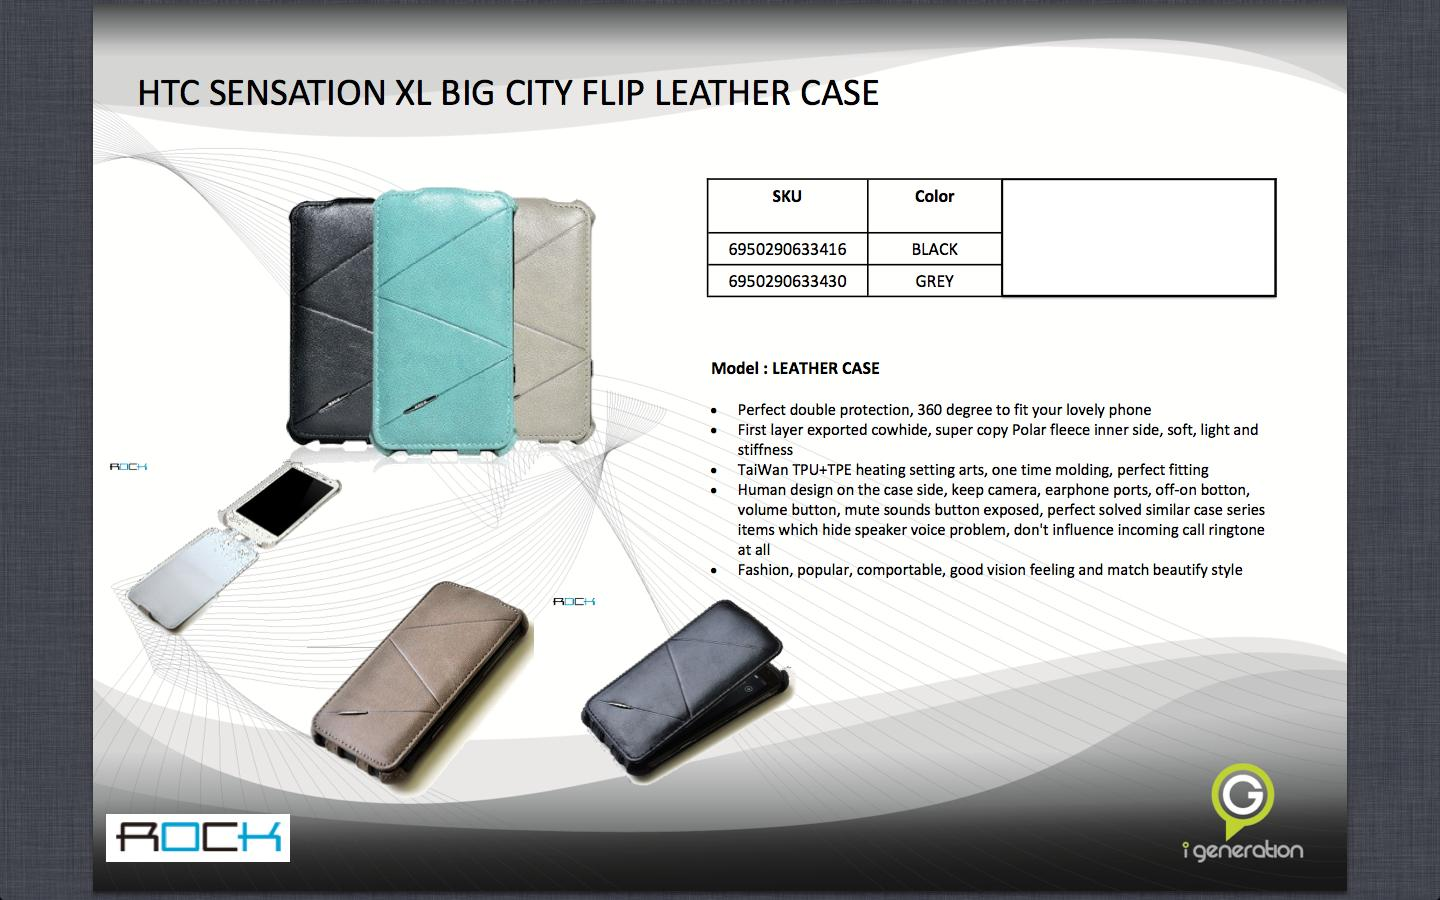 Bdotcom = HTC Sensation XL = ROCK Big City Flip Leather Case